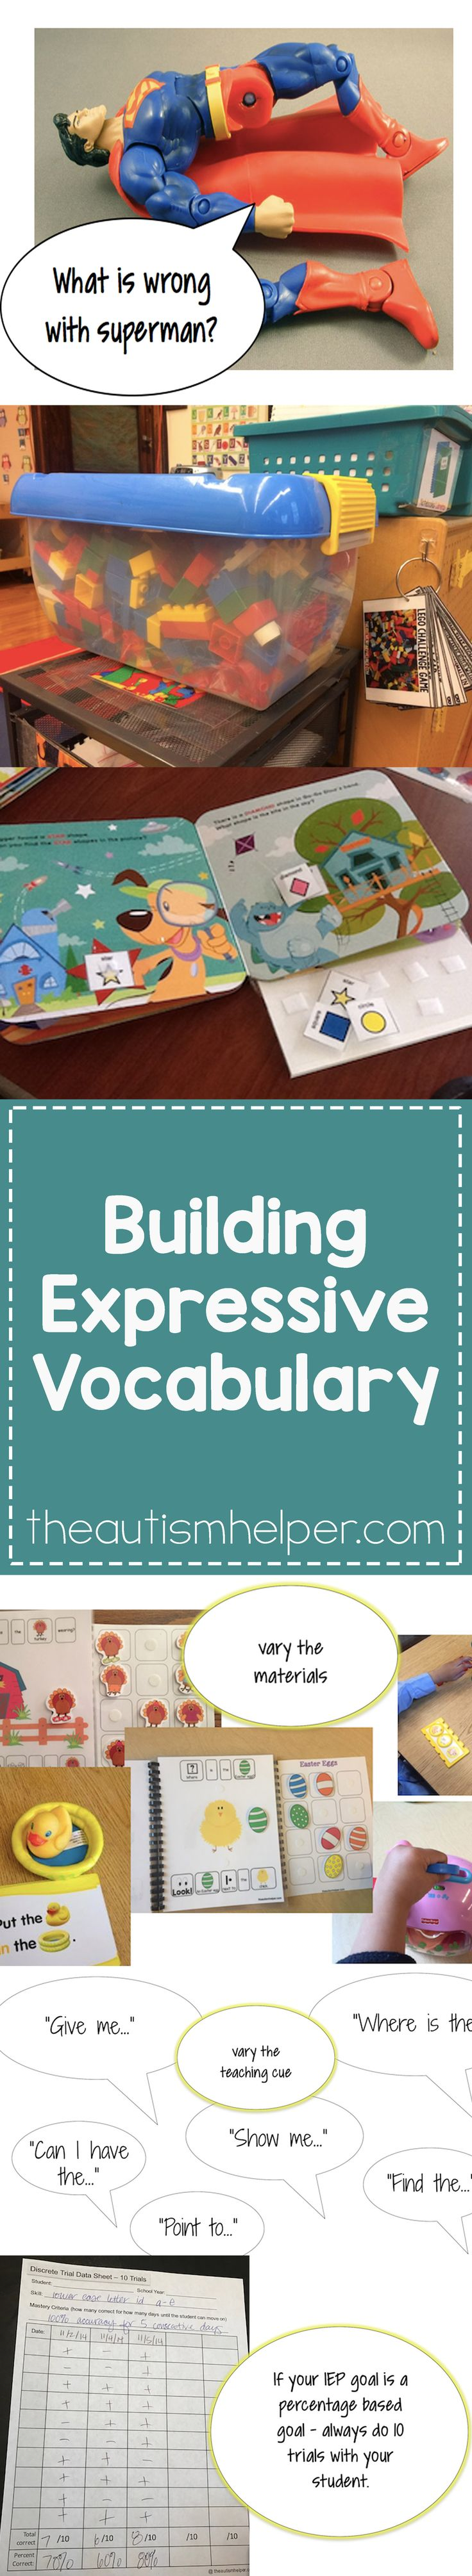 For kids that have emerging verbal skills, we want to get them talking as much as possible & help build expressive vocabulary. Find tips for successful direct instruction & incidental teaching programs on the blog!! From theautismhelper.com #theautismhelper